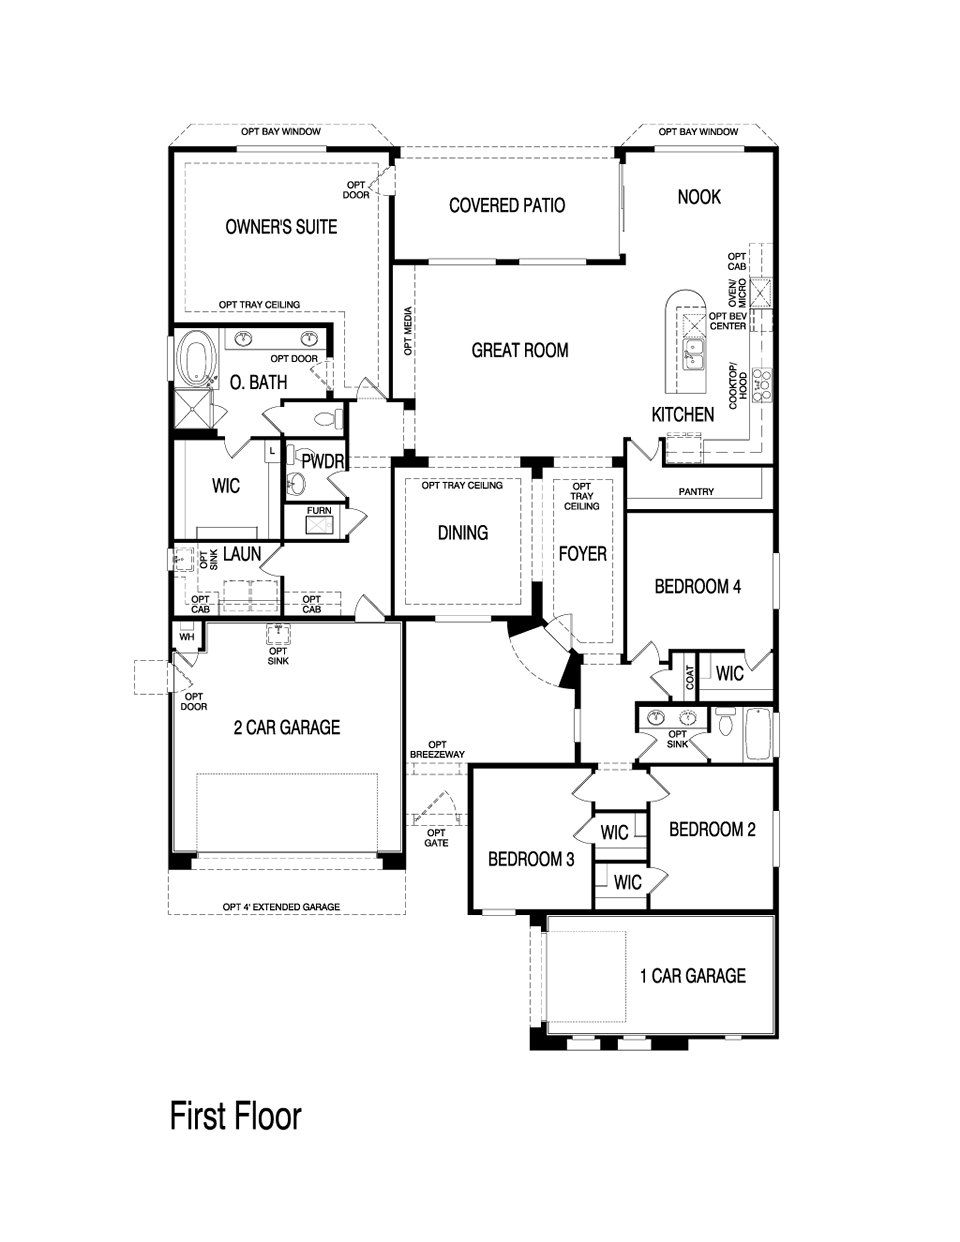 pulte homes cottonwood floor plan via www nmhometeam com pulte call alfonso salazar at pulte homes floor plans